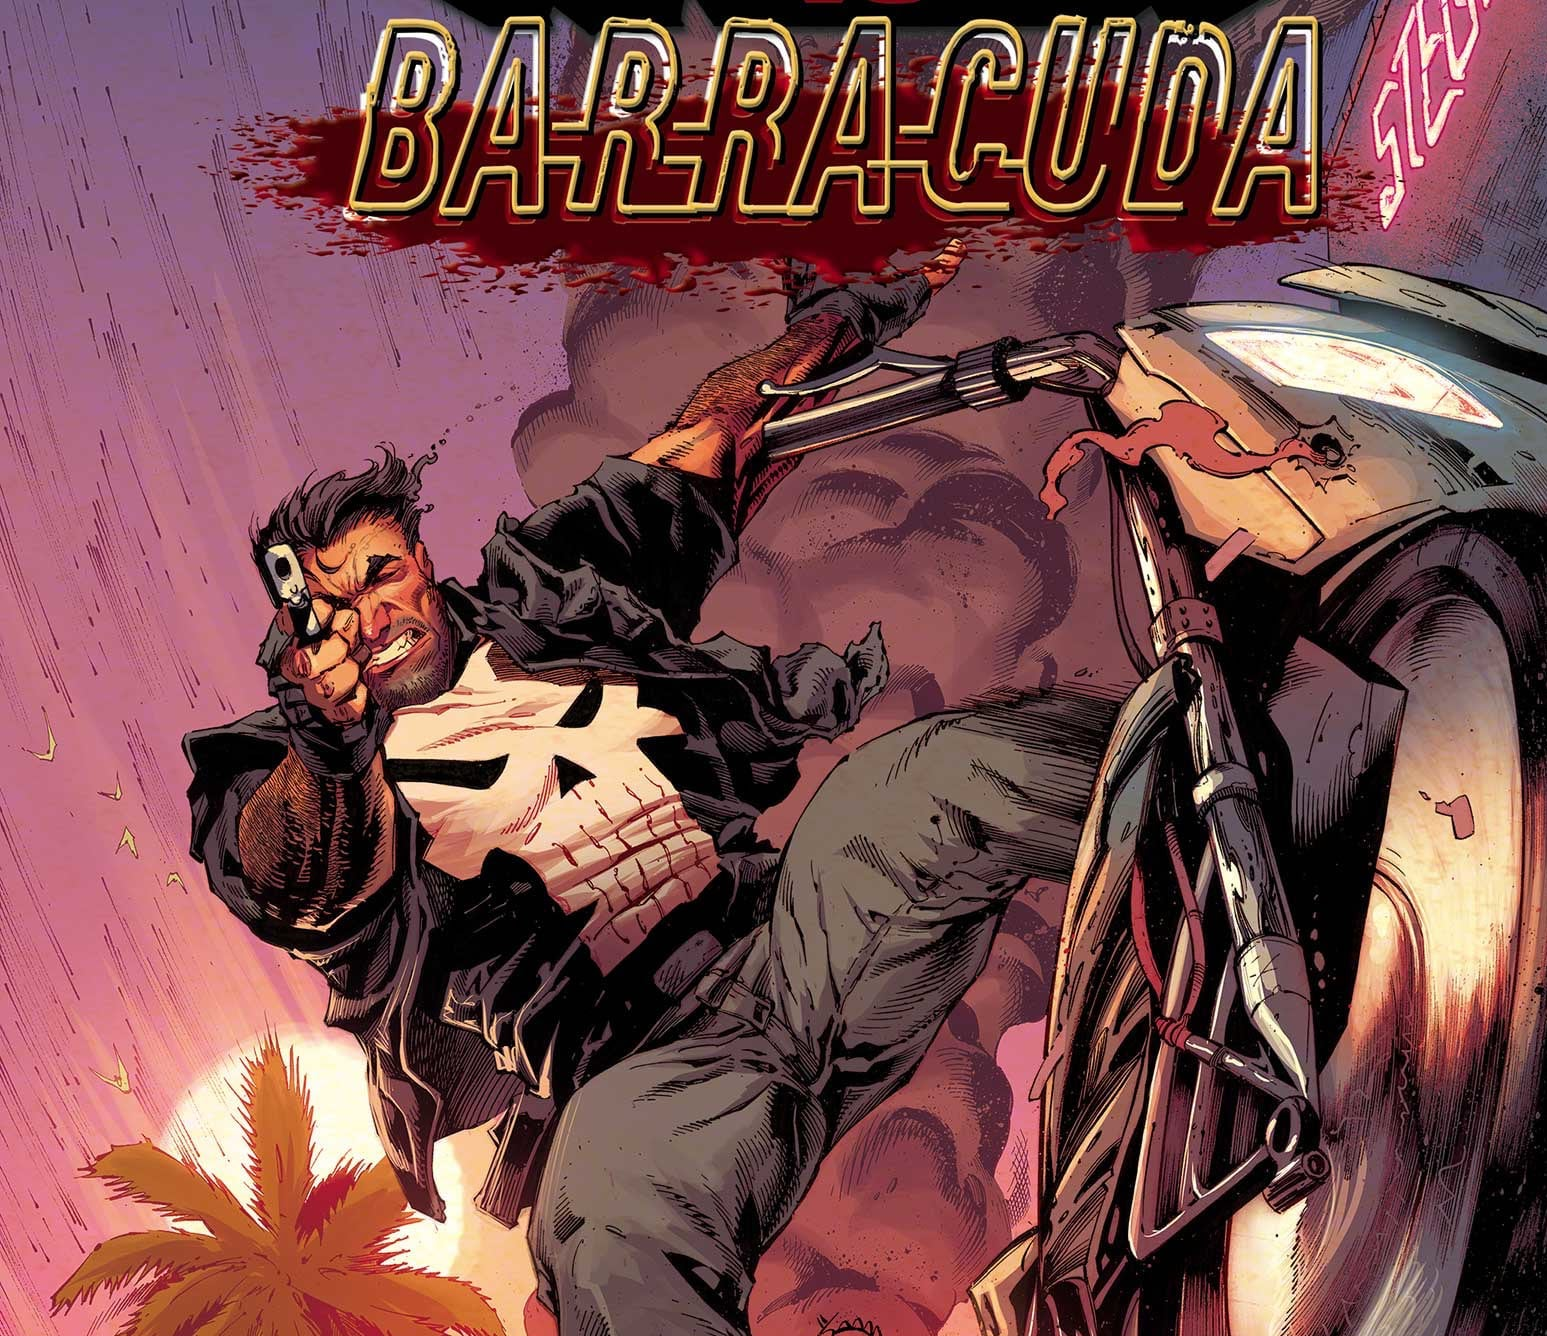 EXCLUSIVE: Ed Brisson and Declan Shalvey talk new series 'The Punisher vs. Barracuda' #1